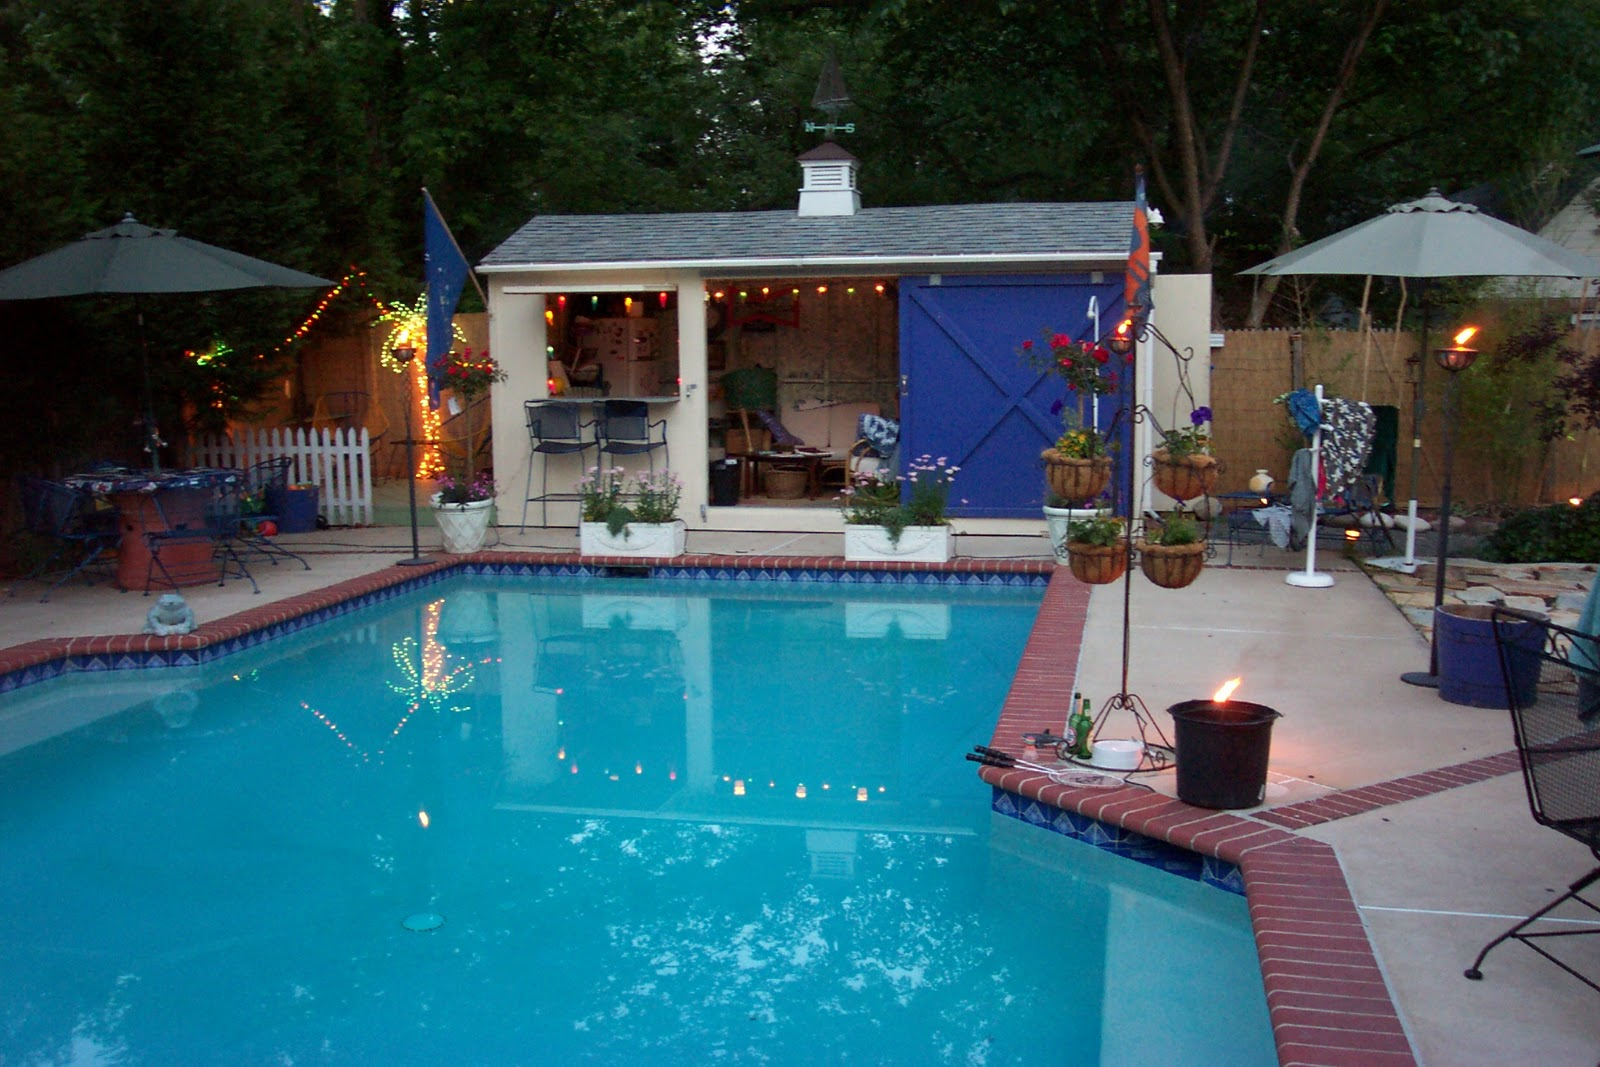 Living stingy swimming pool on a budget - Pool patio ideas on a budget ...